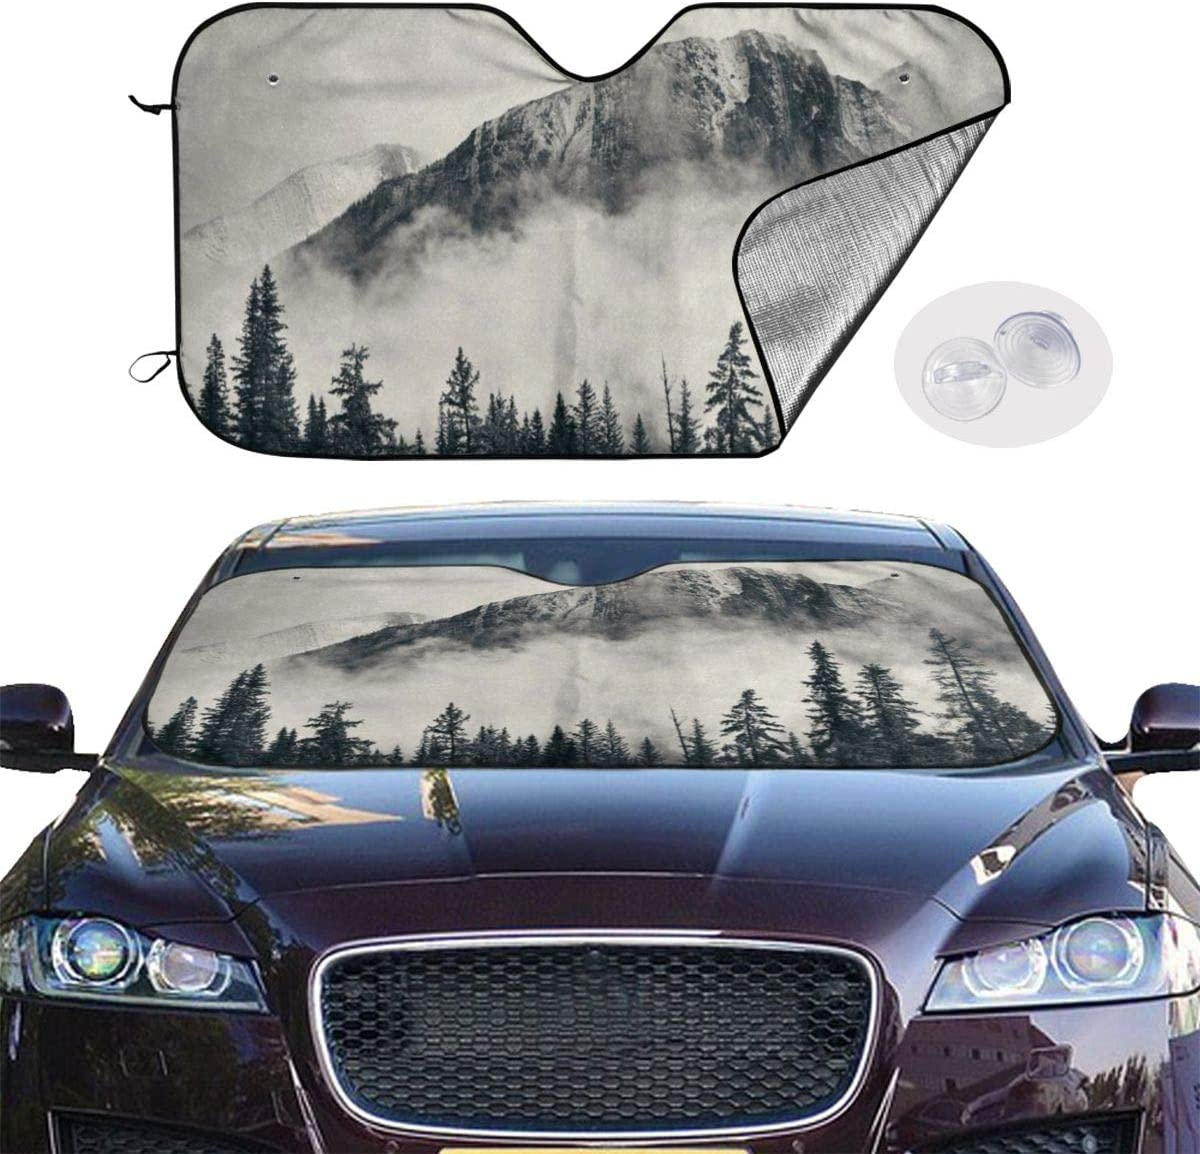 TianHeYue Foggy Mountain Forest Landcape Nature Car Windshield Sun Shade Universal Fit UV Sun and Heat Reflector 130x70cm